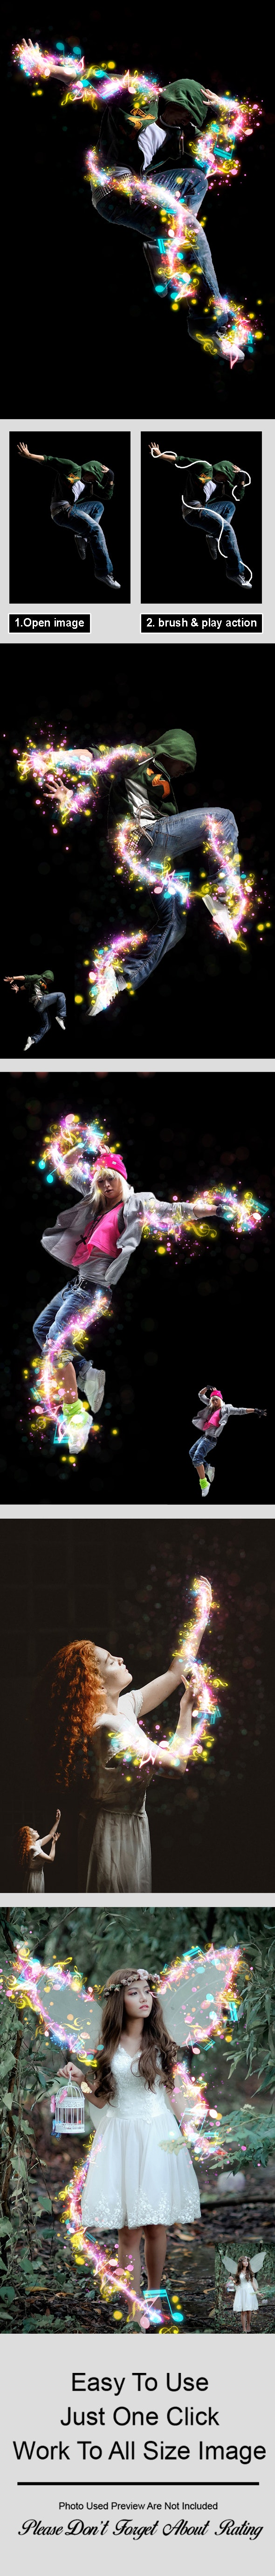 Magic Music Photoshop Action - Photo Effects Actions